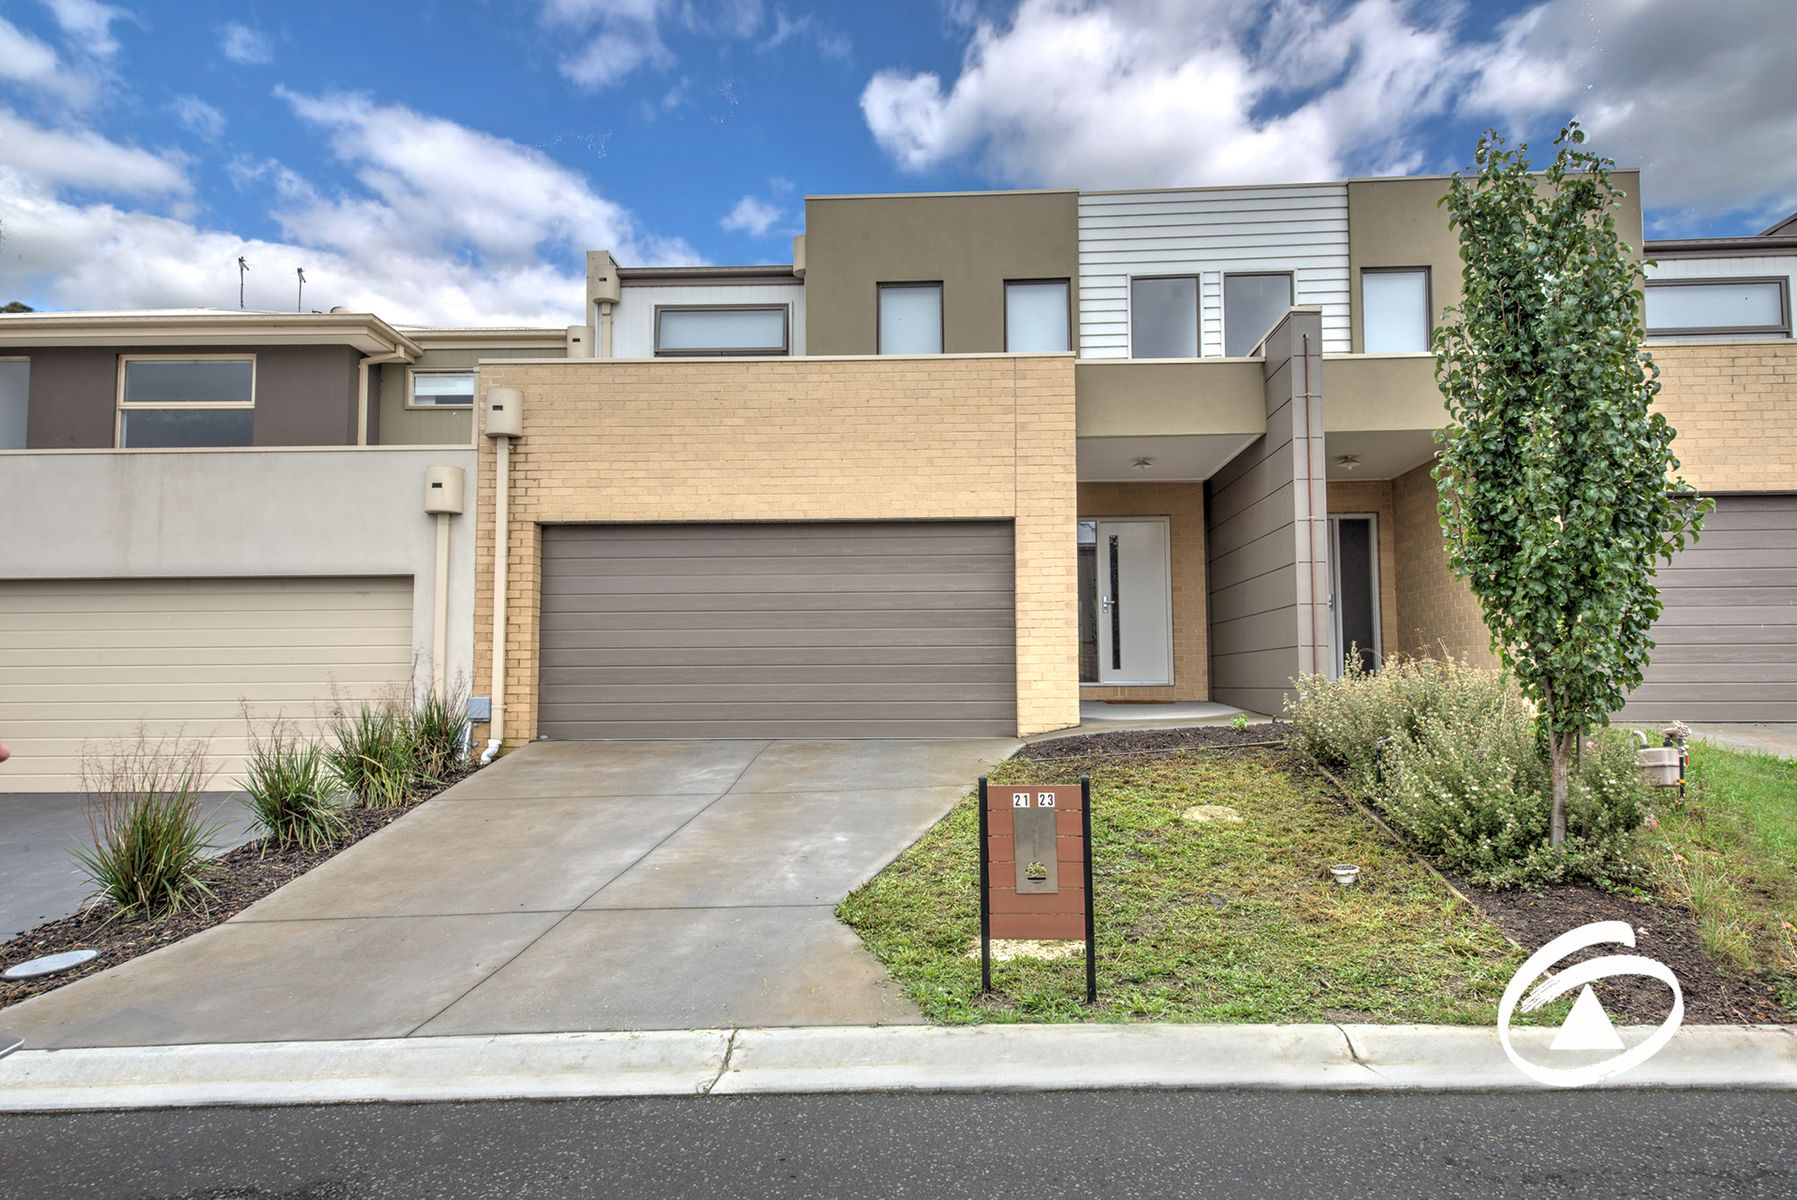 21/23 Atlantic Drive, Pakenham, VIC 3810